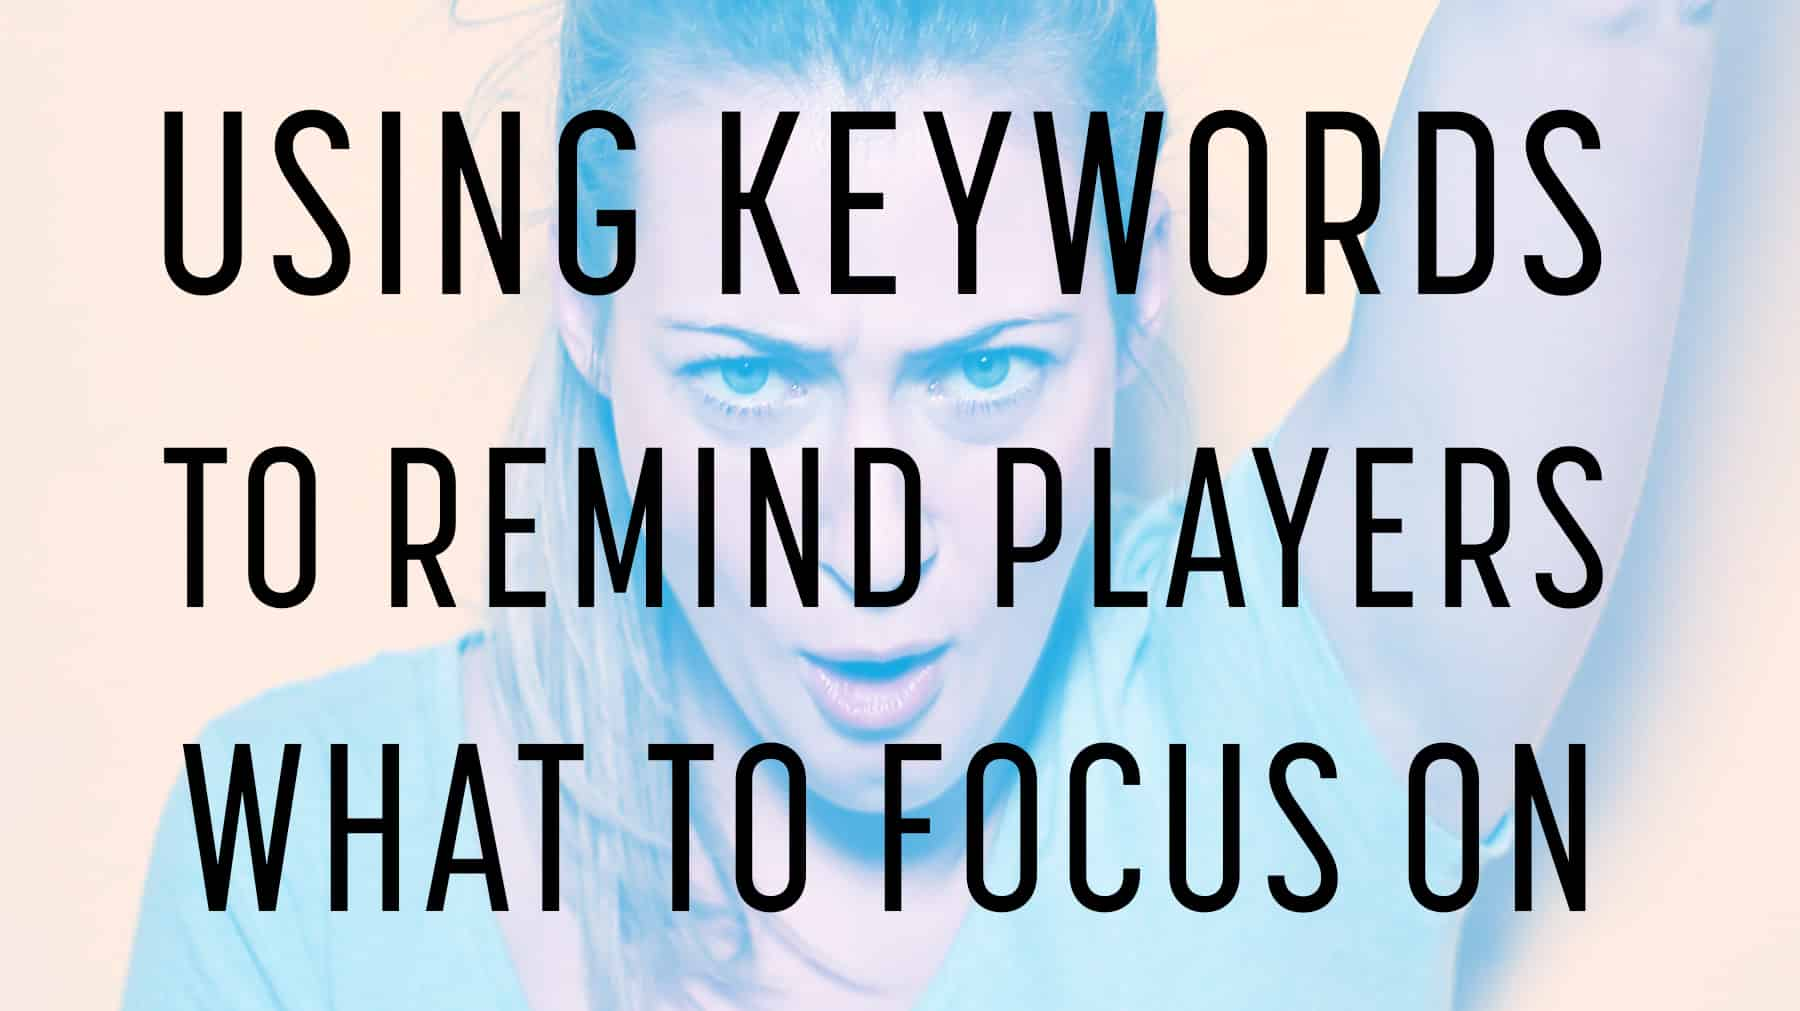 Using keywords to remind players what to focus on